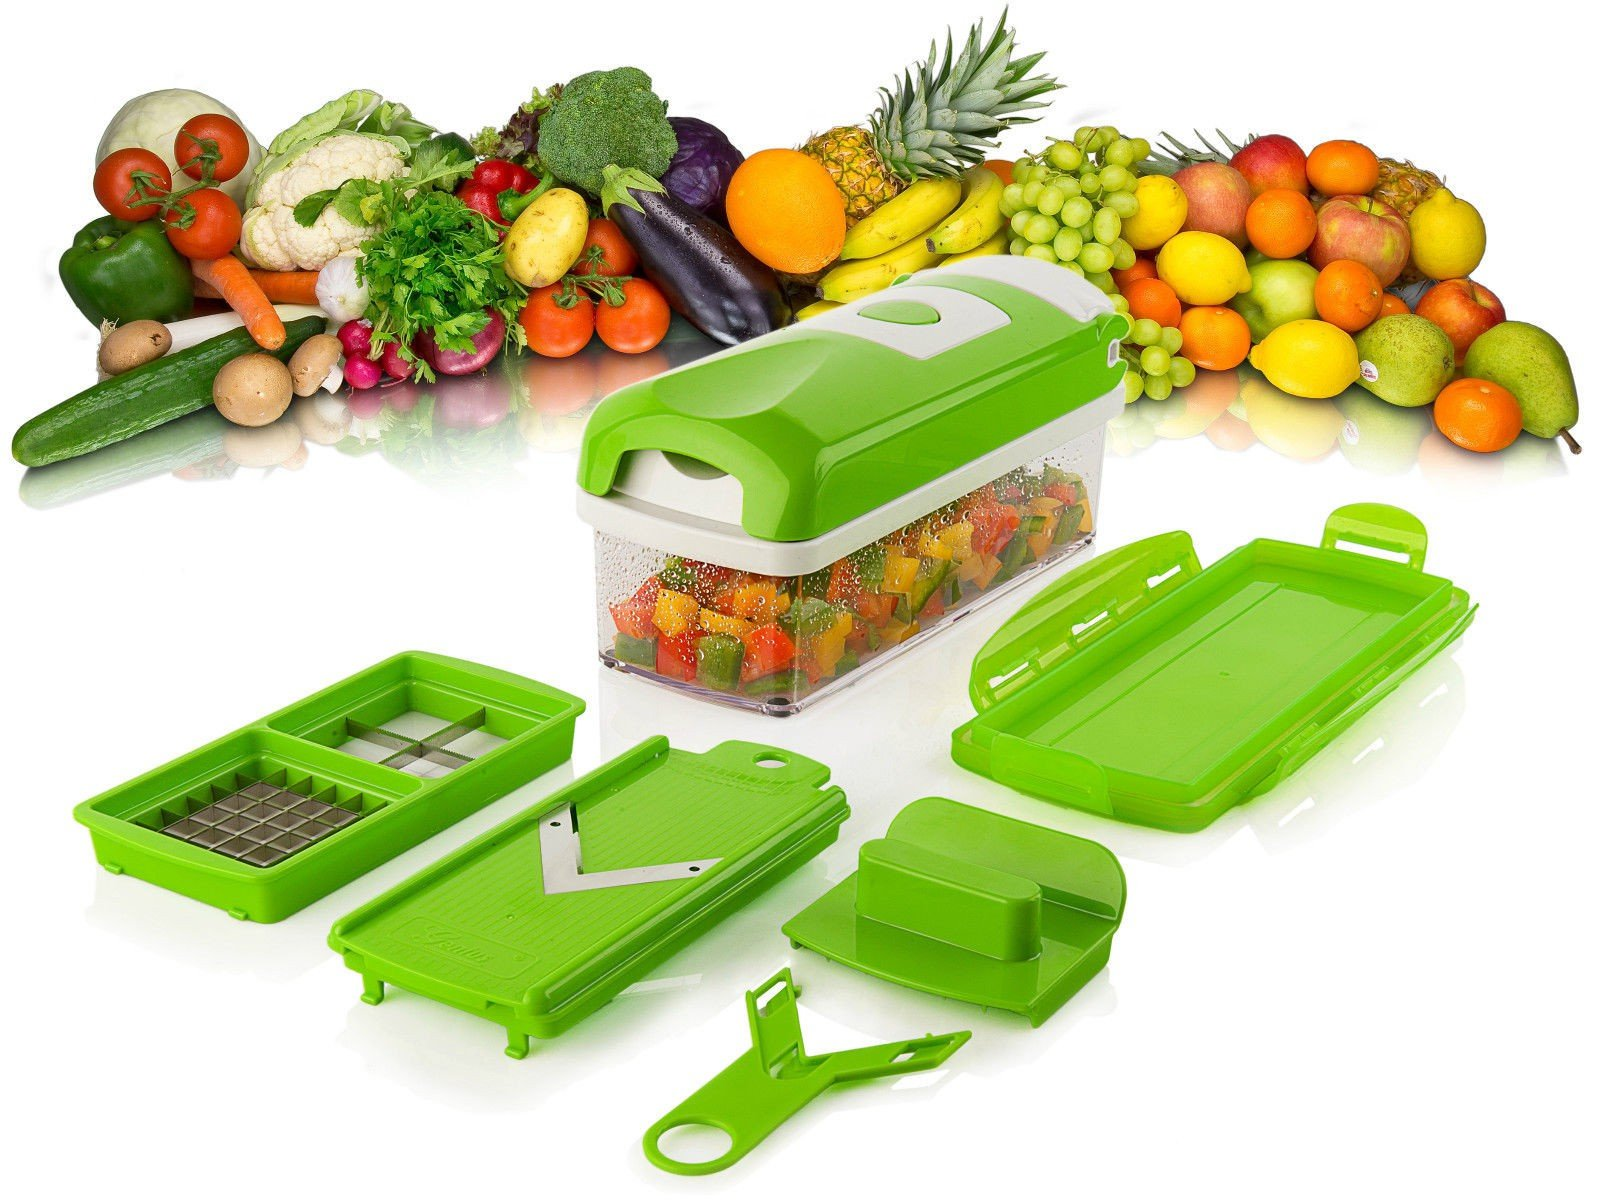 Genius Nicer Dicer Plus Compact 7 Piece Dicing Set Vegetable Fruit Multi Slicer Green Buy Online In China At China Desertcart Com Productid 60488118